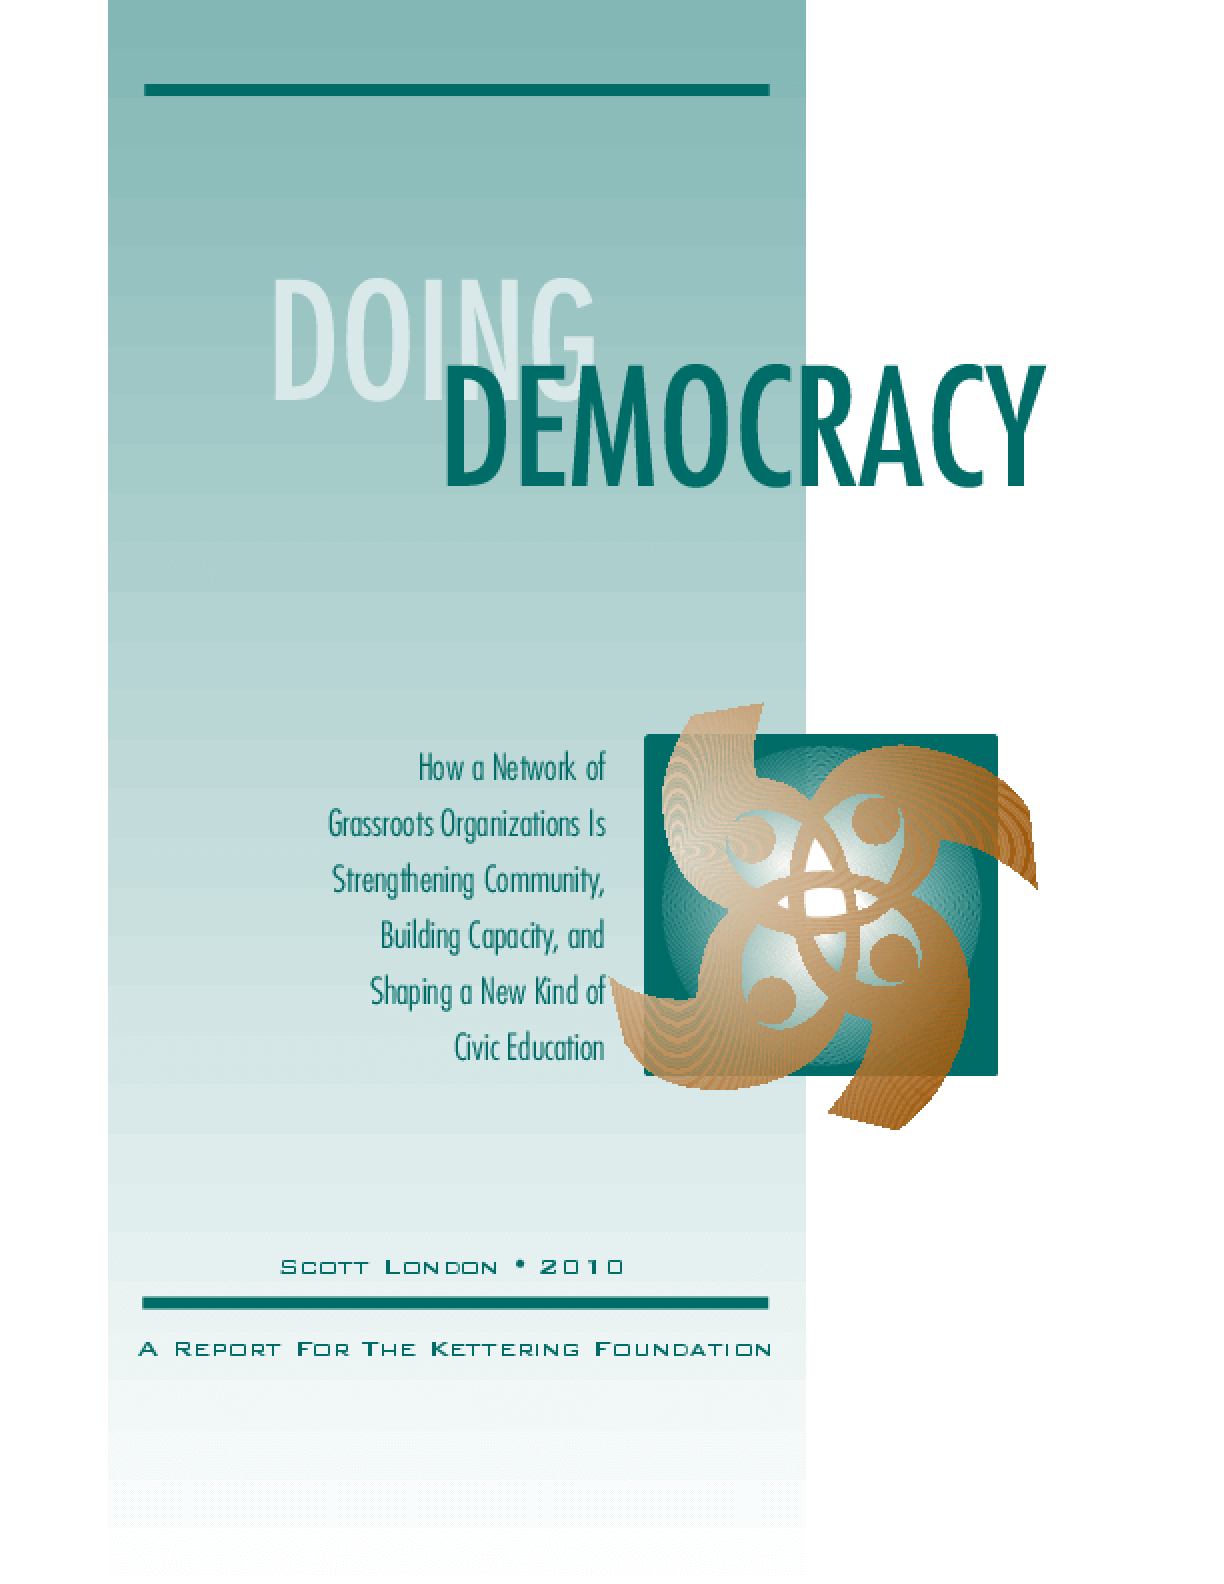 Doing Democracy: How a Network of Grassroots Organizations Is Strengthening Community, Building Capacity, and Shaping a New Kind of Civic Education